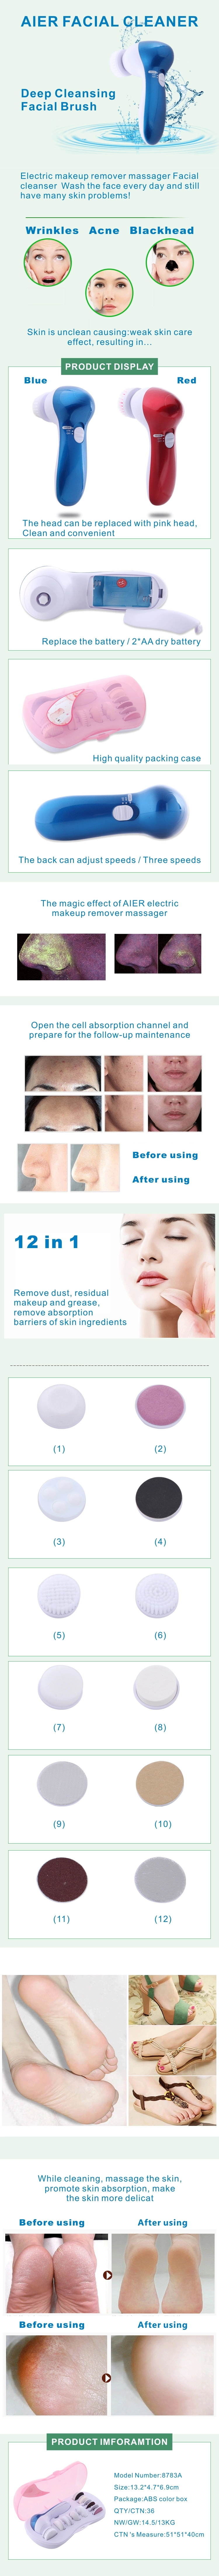 Multifunctional 12 in 1 Facial Cleanser Electric Exfoliate Kit AE-8381A